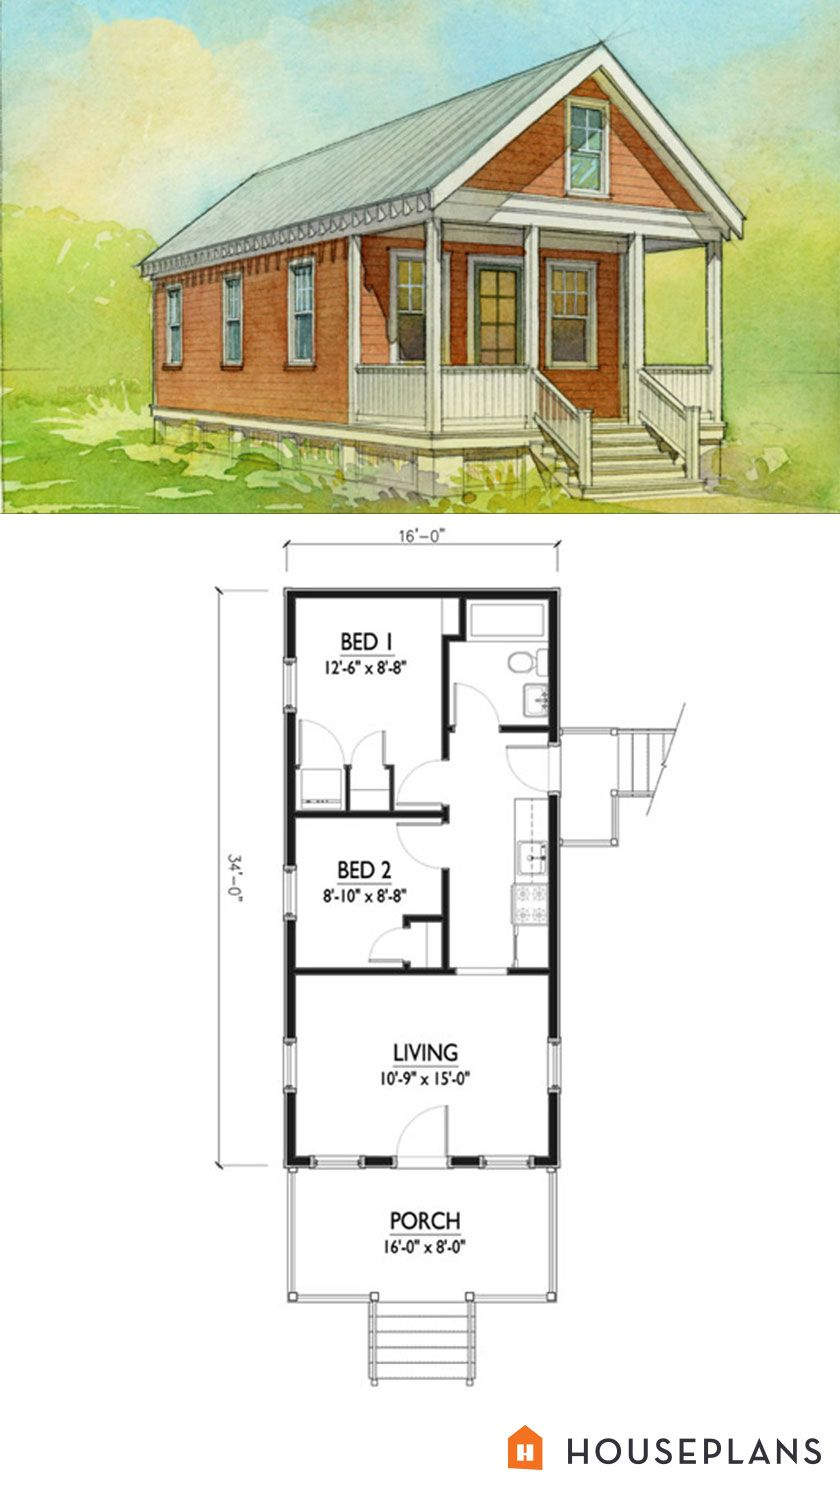 Small katrina cottage house plan 500sft 2br 1 bath by for Small cottage home designs